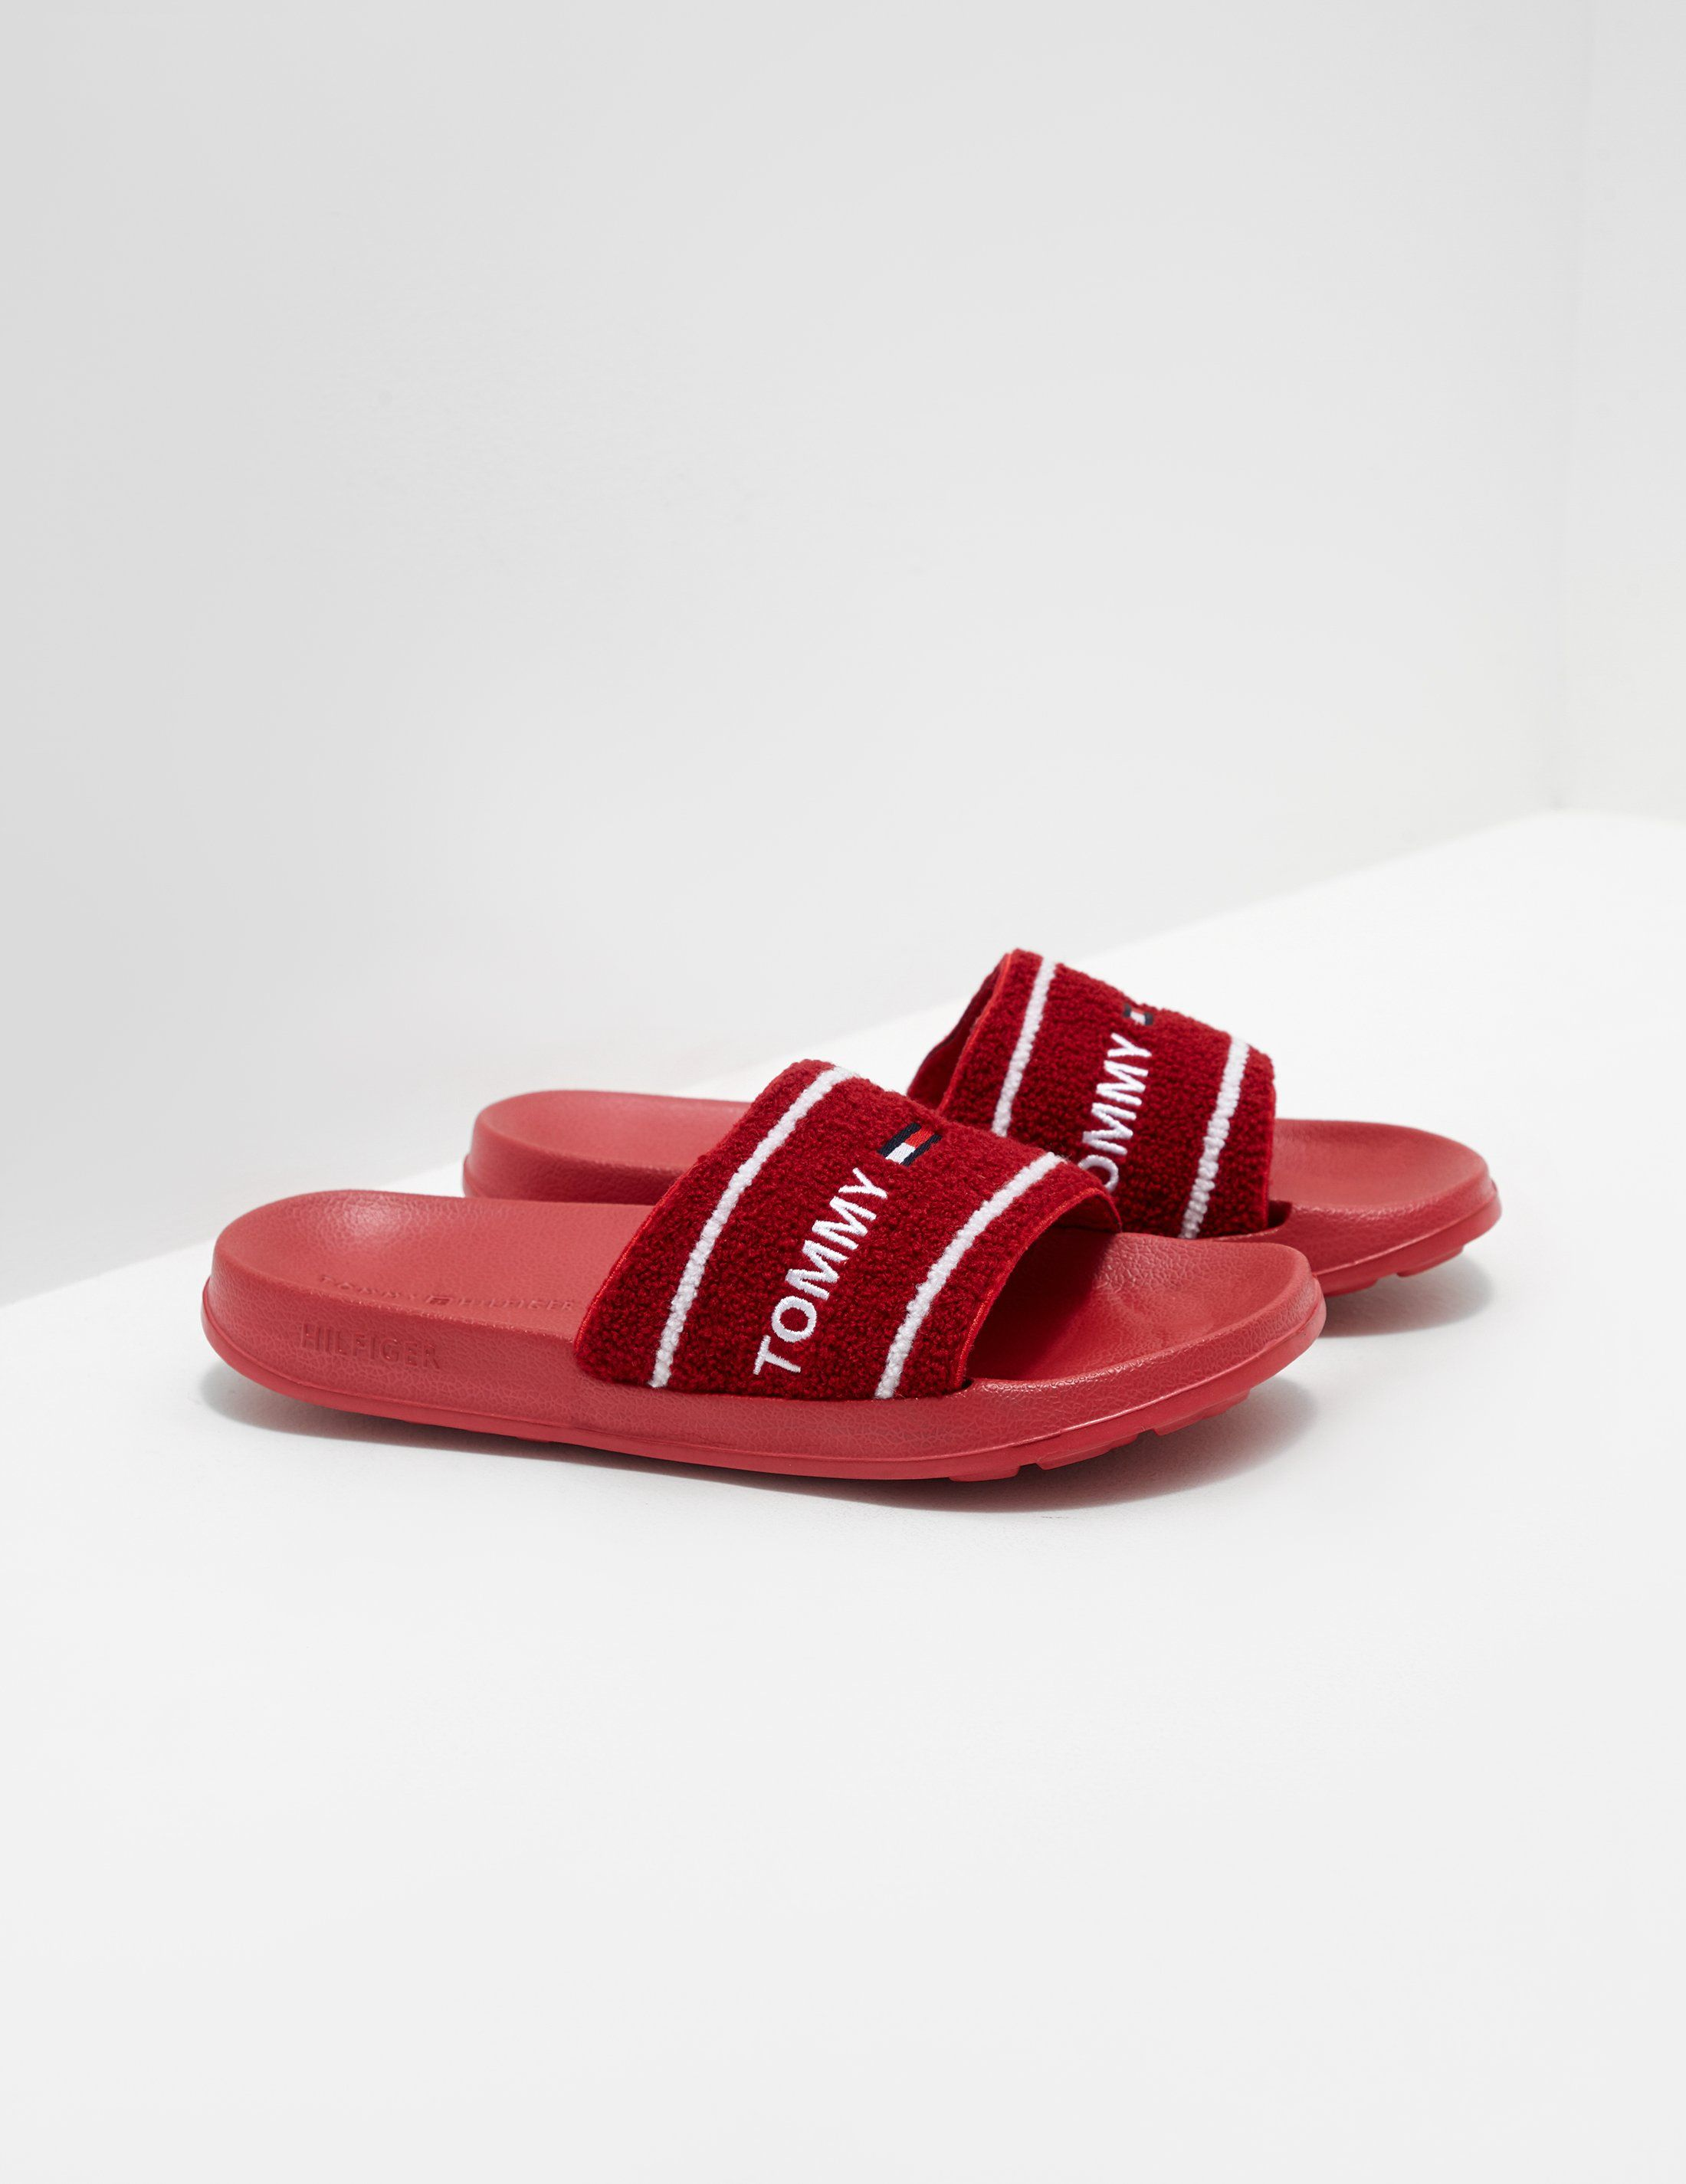 Tommy Jeans Beach Slides Women's